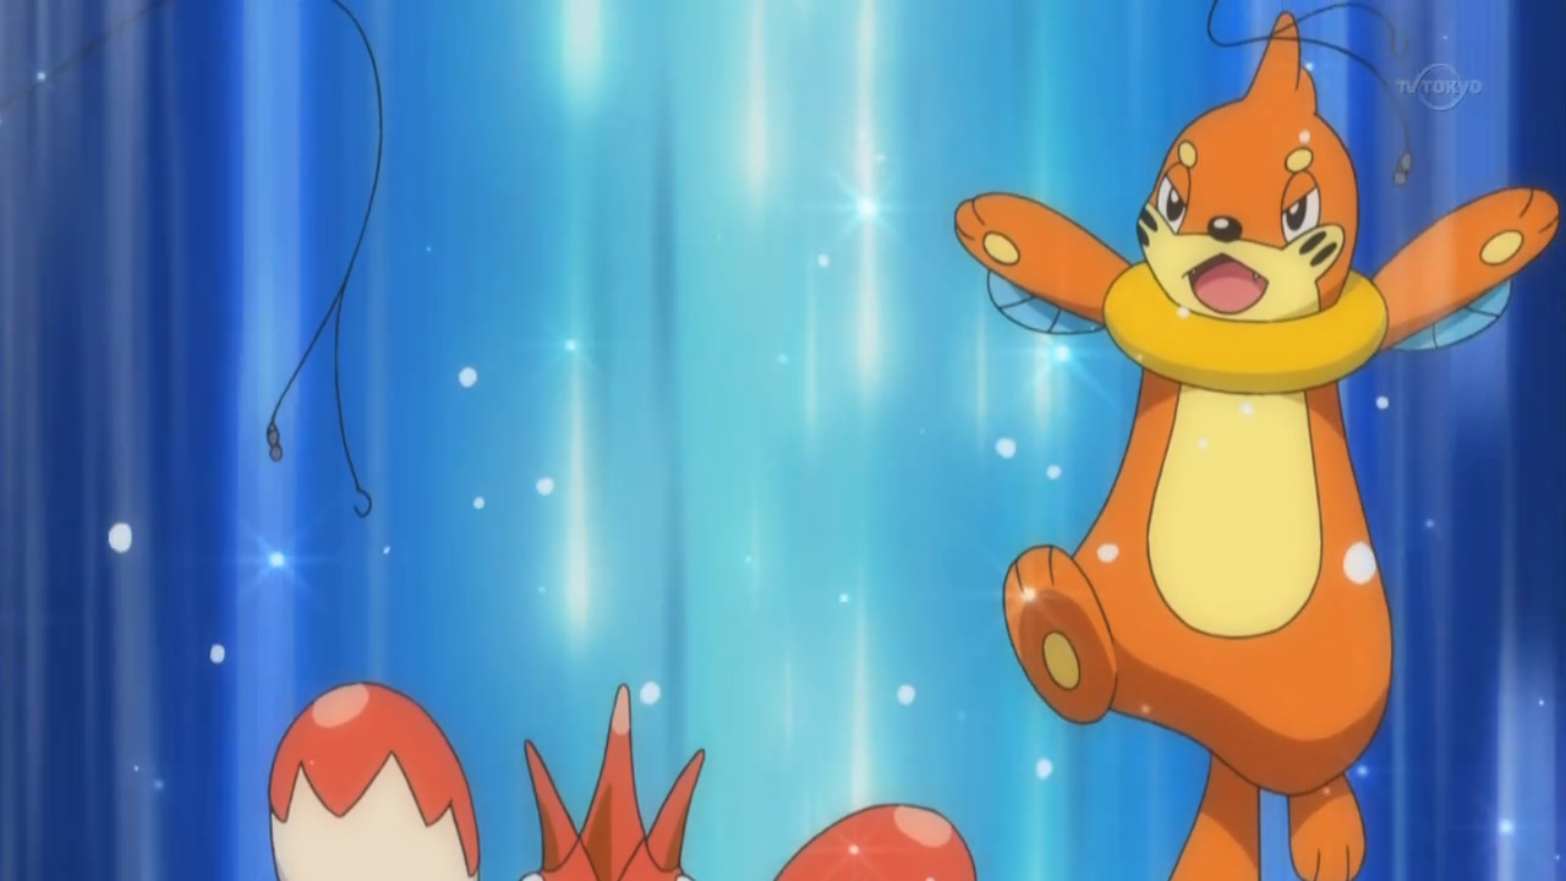 Cilan helped Soren catch a Buizel as a new addition to the team.